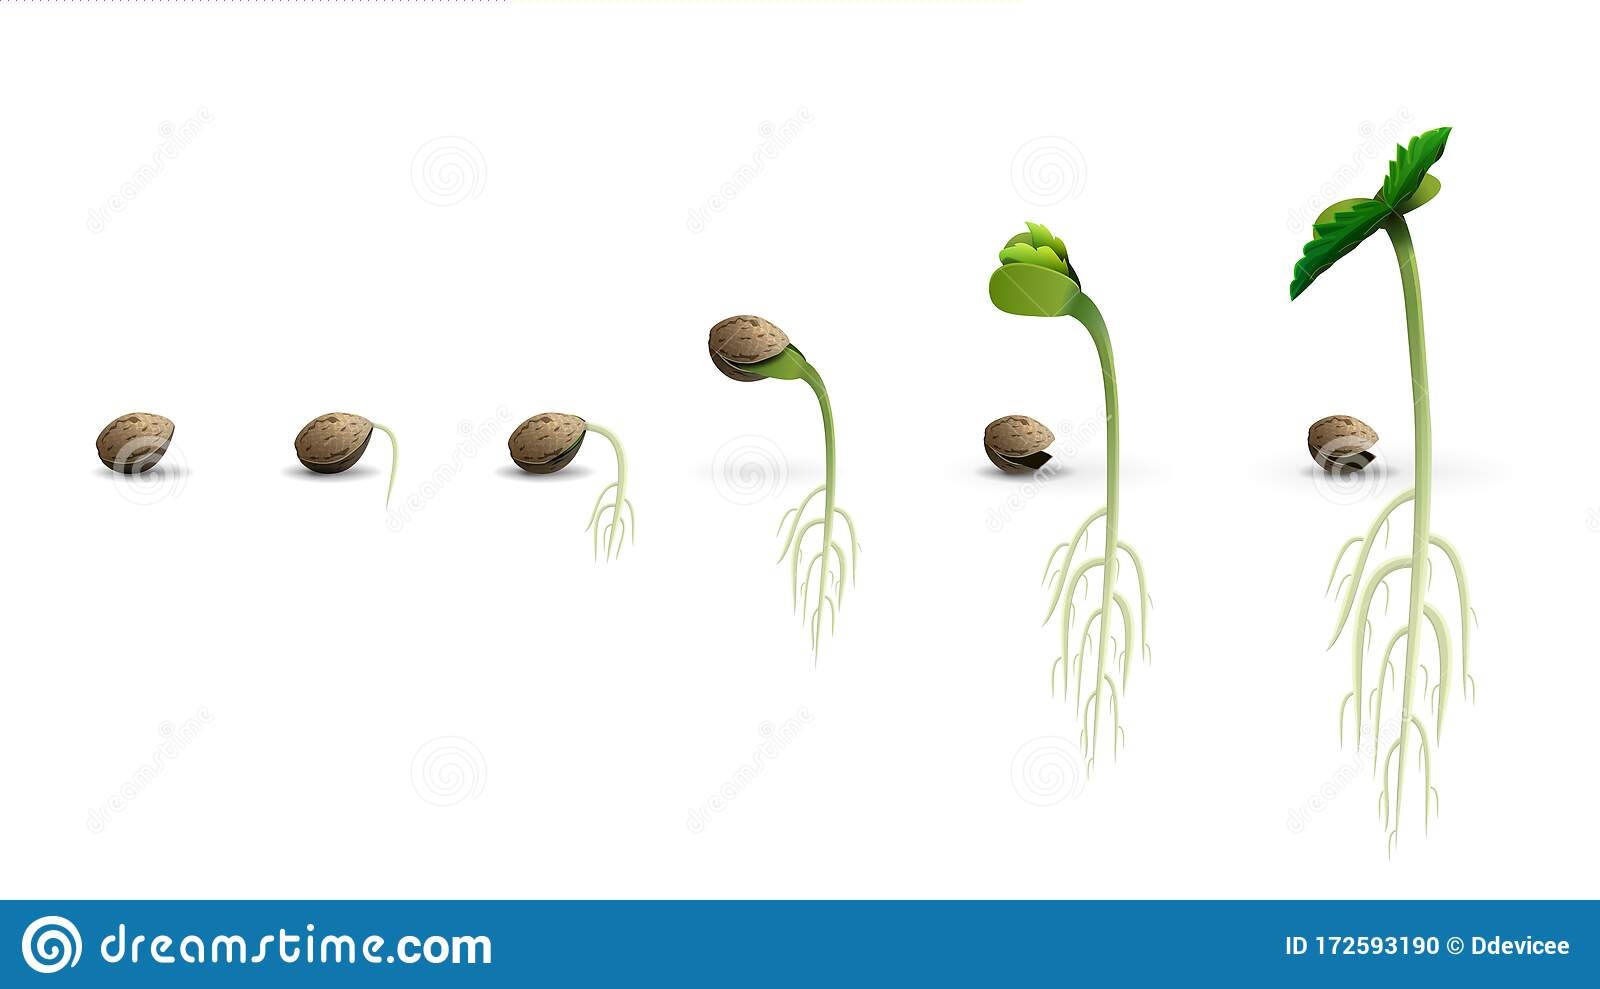 Stages Of Cannabis Seed Germination From Seed To Sprout